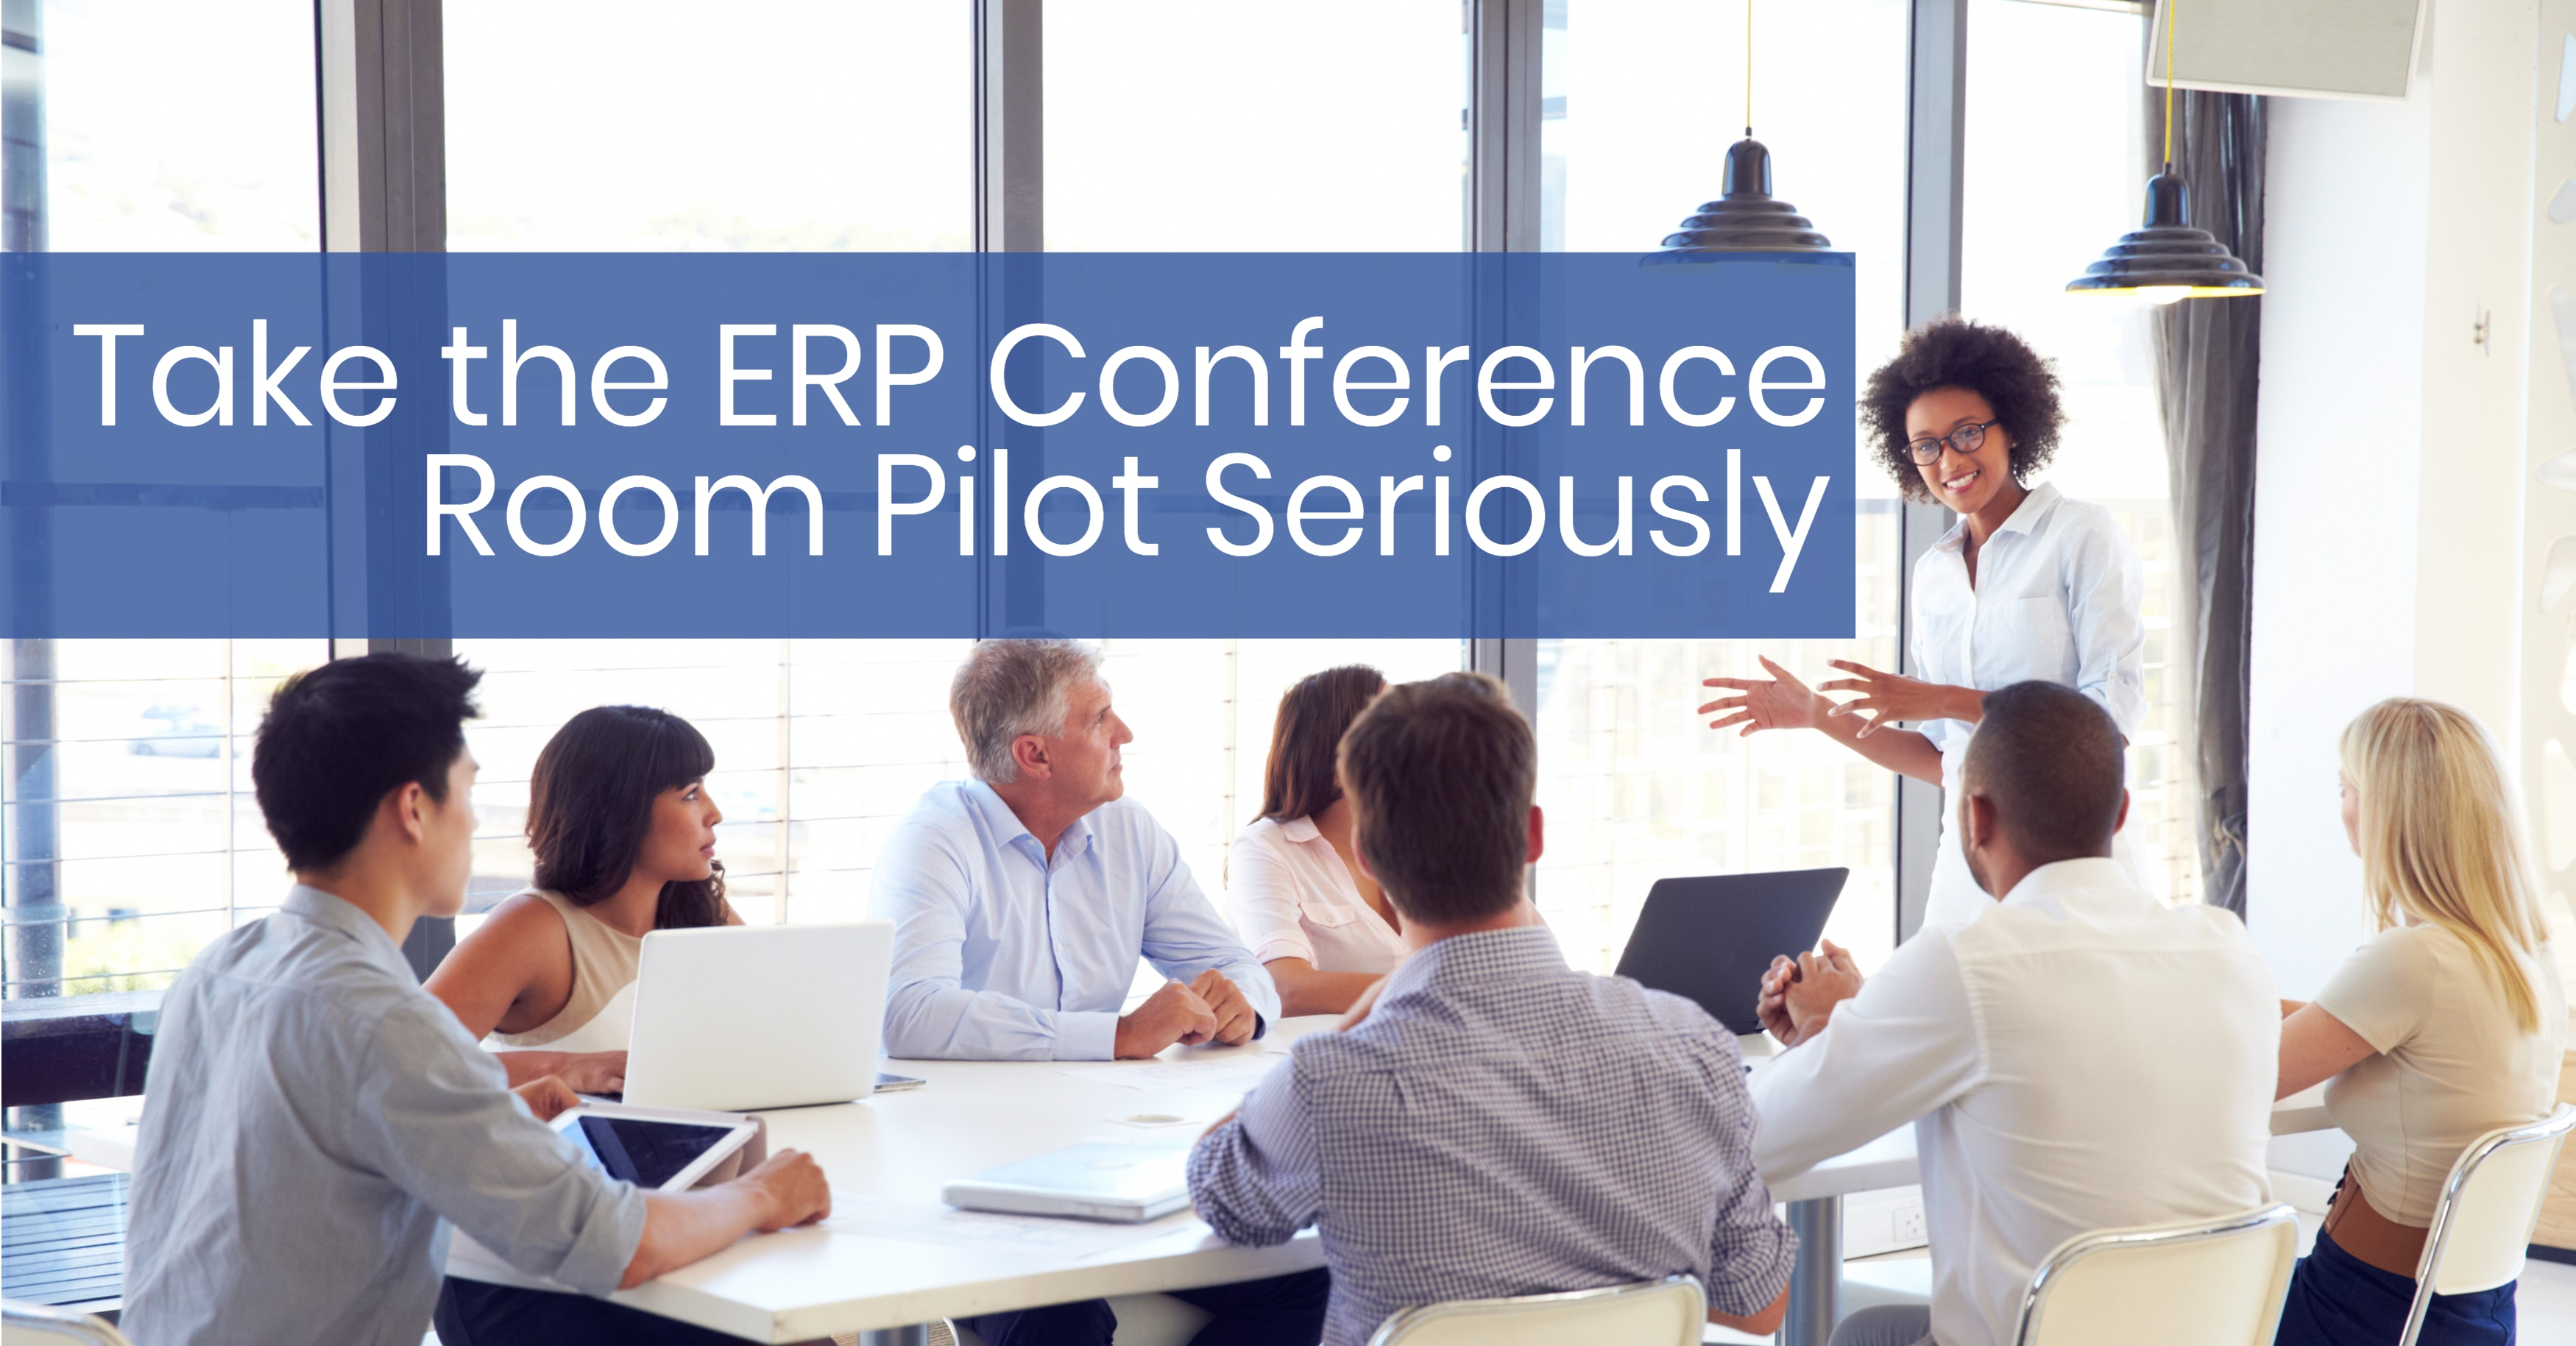 Take the ERP Conference Room Pilot Seriously